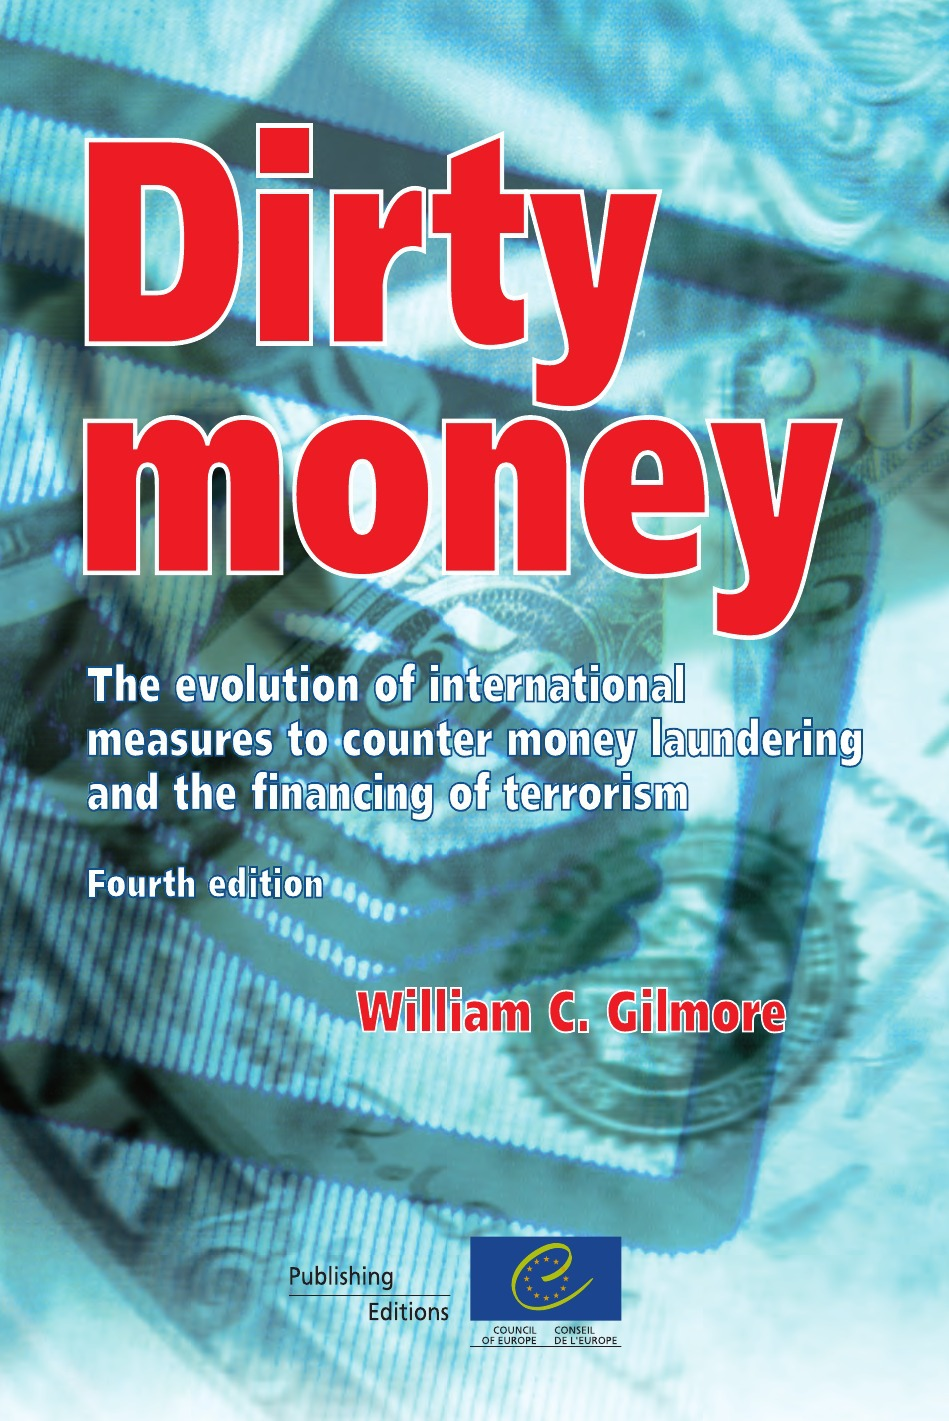 dirty money ; the evolution of international measures to counter money laundering and the financing of terrorism (4th edition)